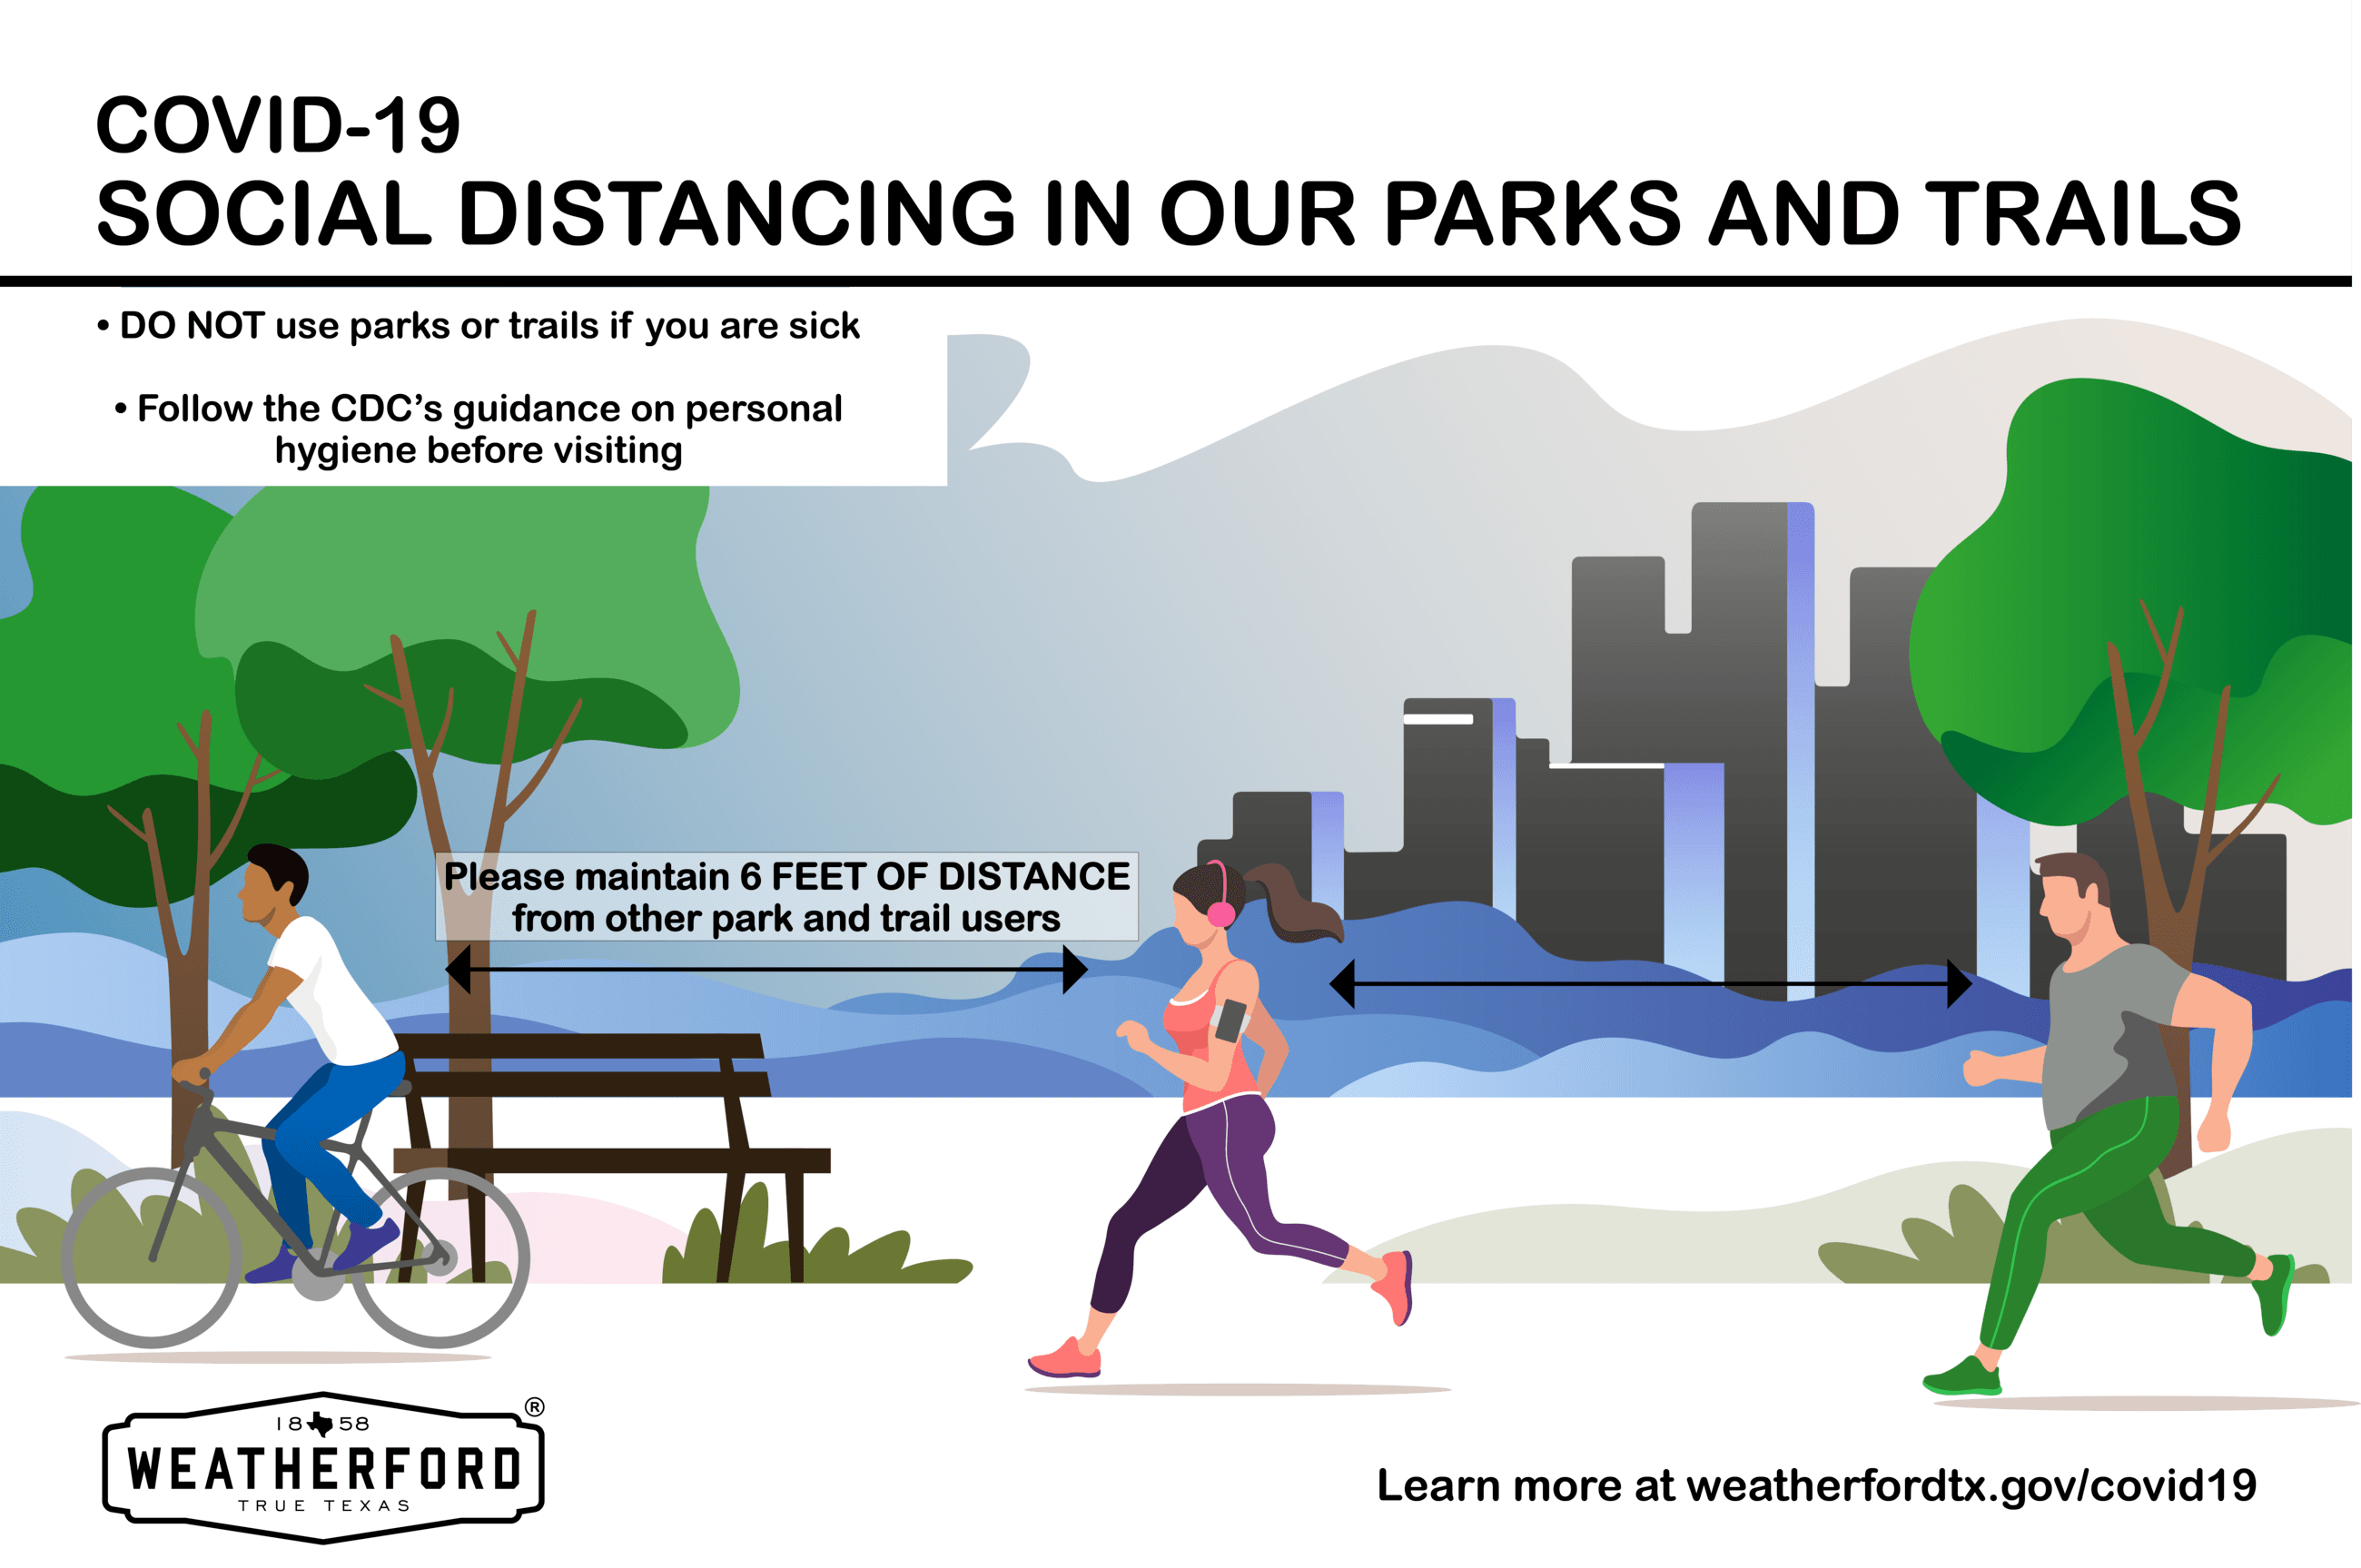 Social Distancing in Parks and on Trails